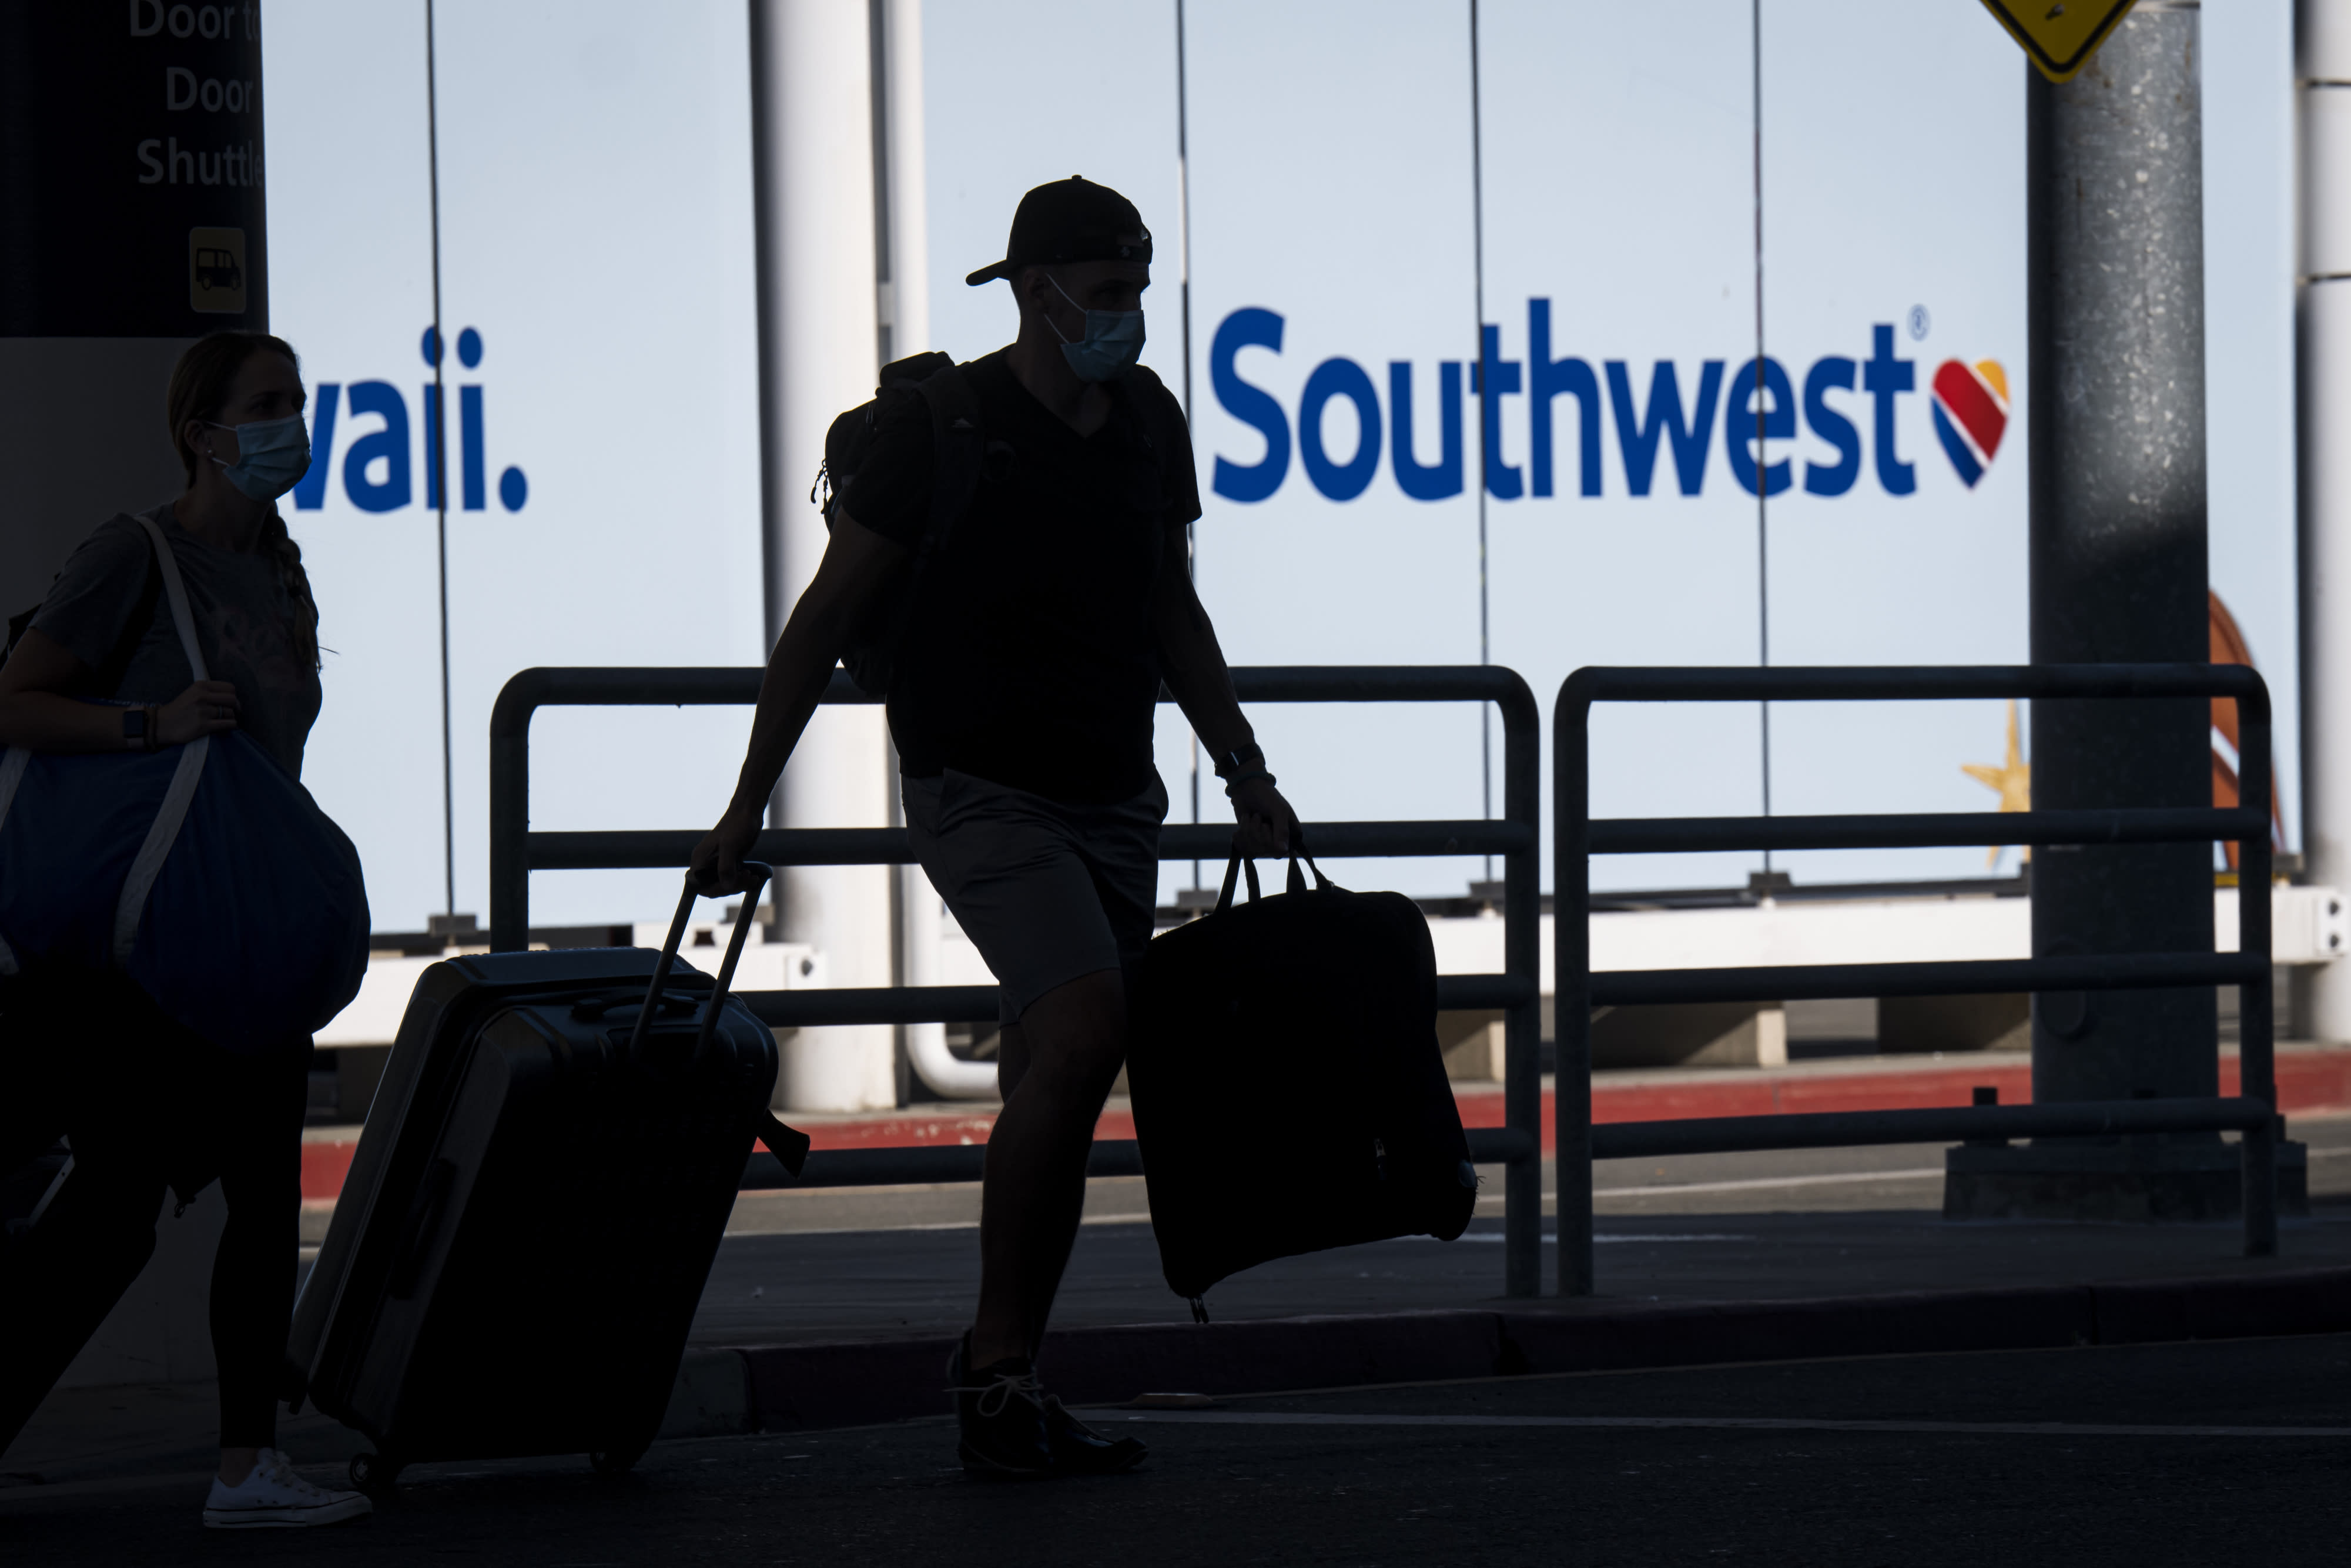 Southwest Airlines warns more than 1,000 pilots, flight attendants could be furloughed